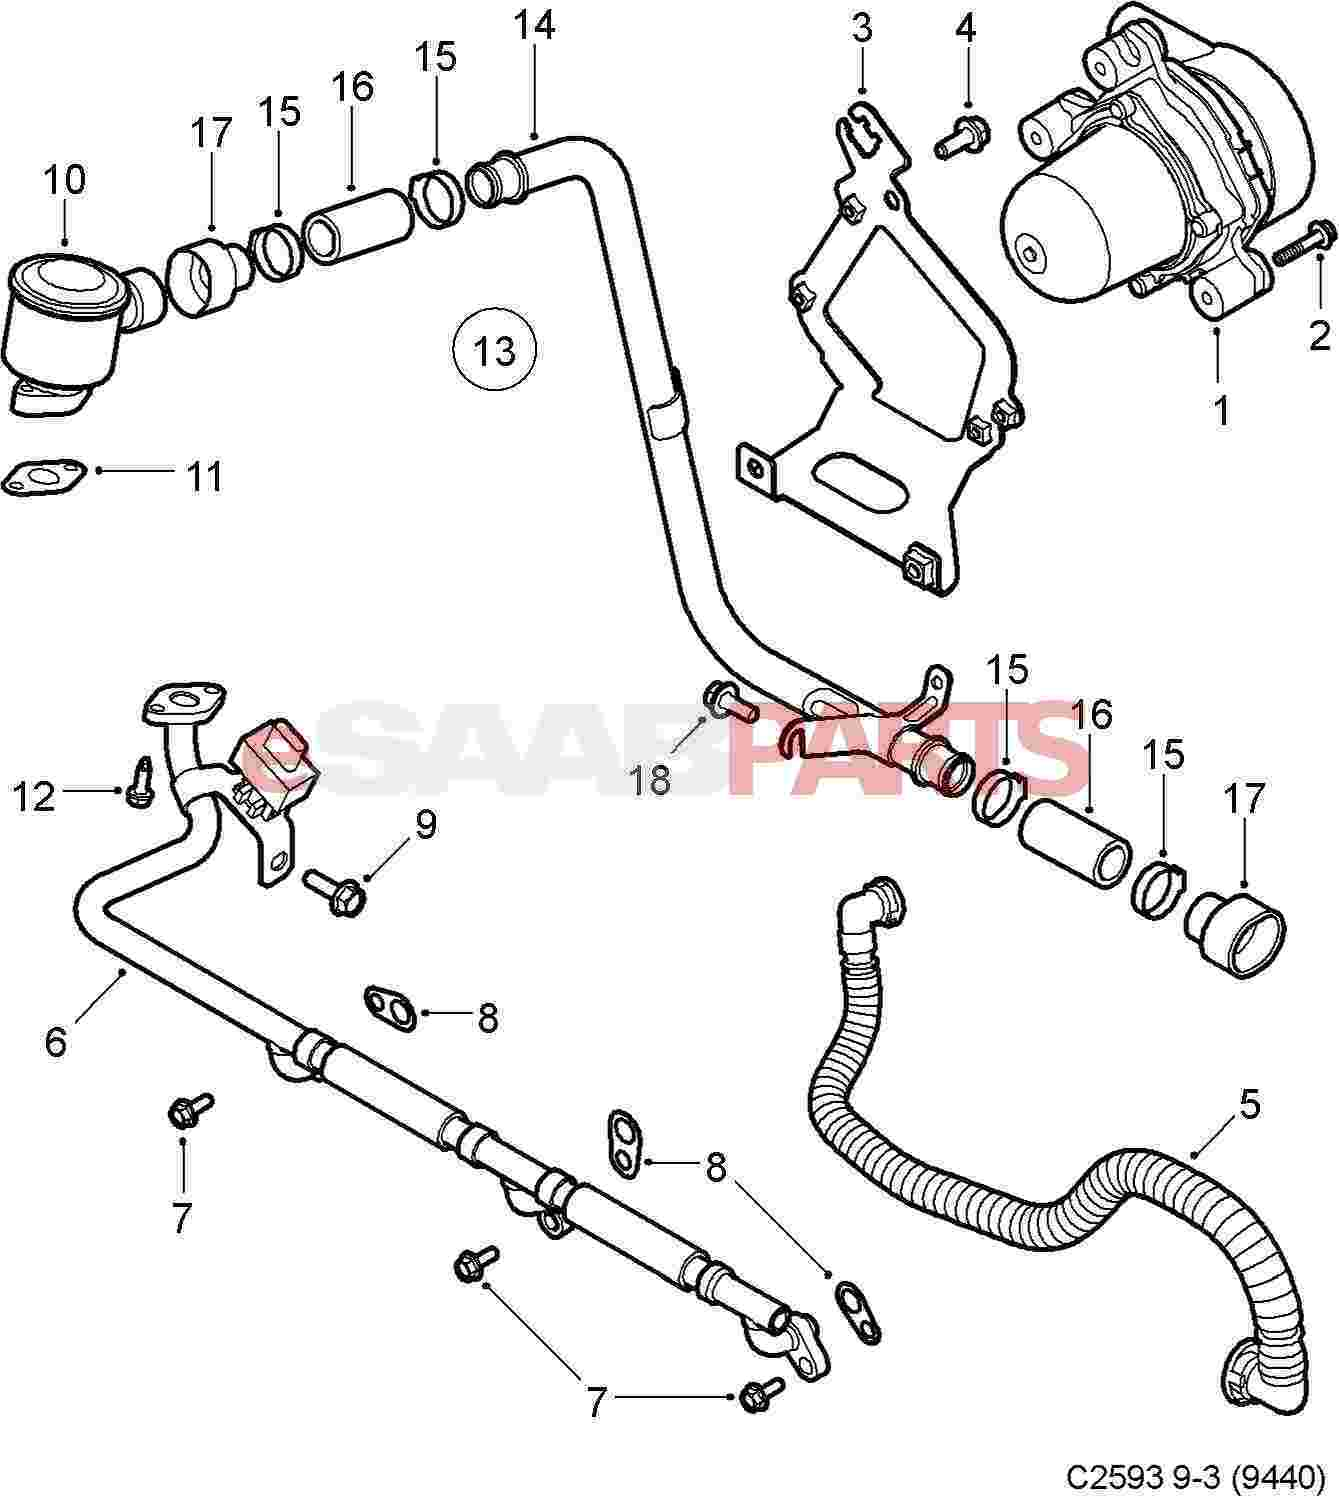 [12791285] SAAB Secondary Air Injection Air Flow Check